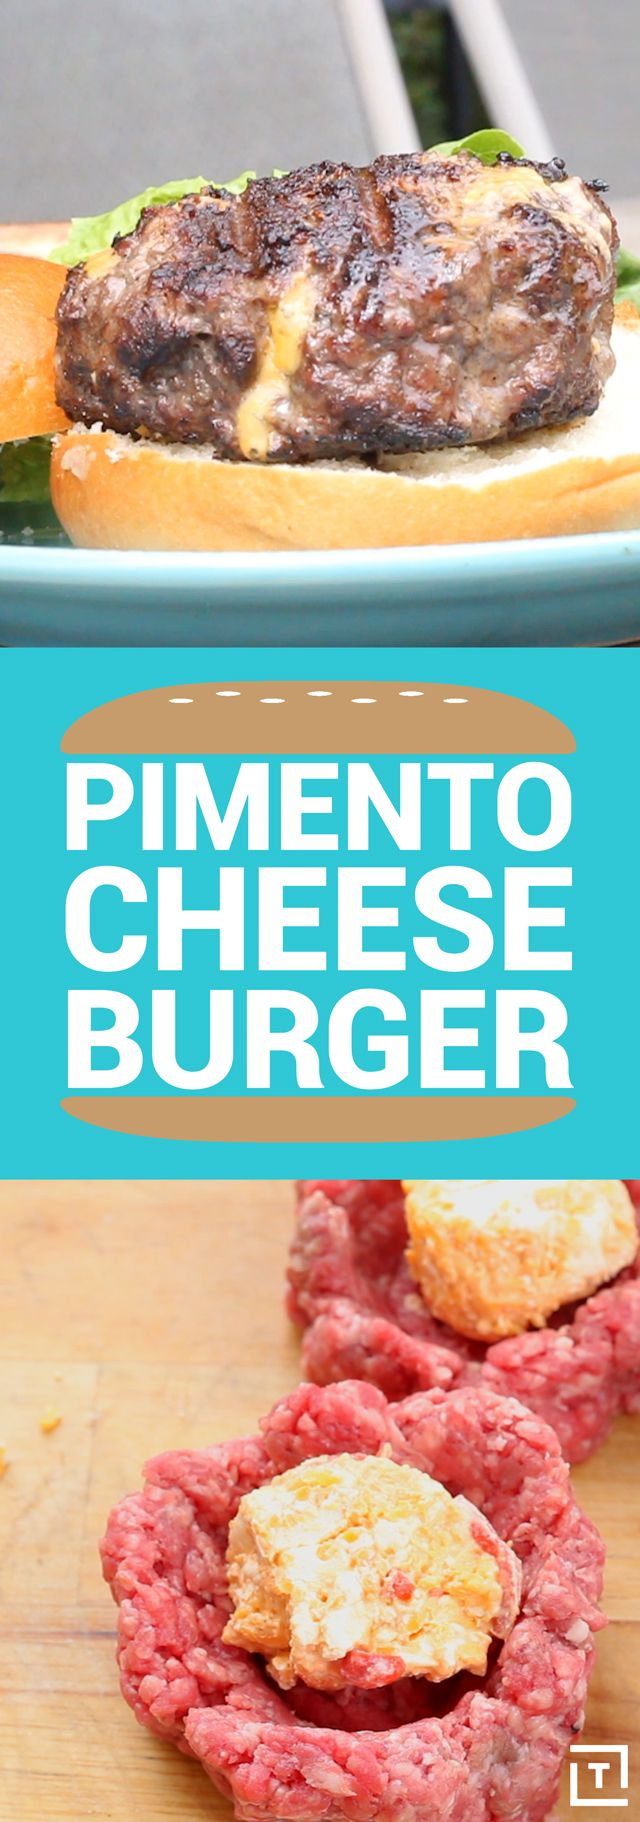 The only thing better than a big, fat, juicy burger is a hefty, all-beef burger stuffed to the brim with Southern pimento cheese. BBQ Tricks shows us how to level up our cheeseburgers by ditching the sliced American cheese for an easy-to-make Southern-style pimento cheese that'll give your burger the extra bite of flavor you didn't know you needed.